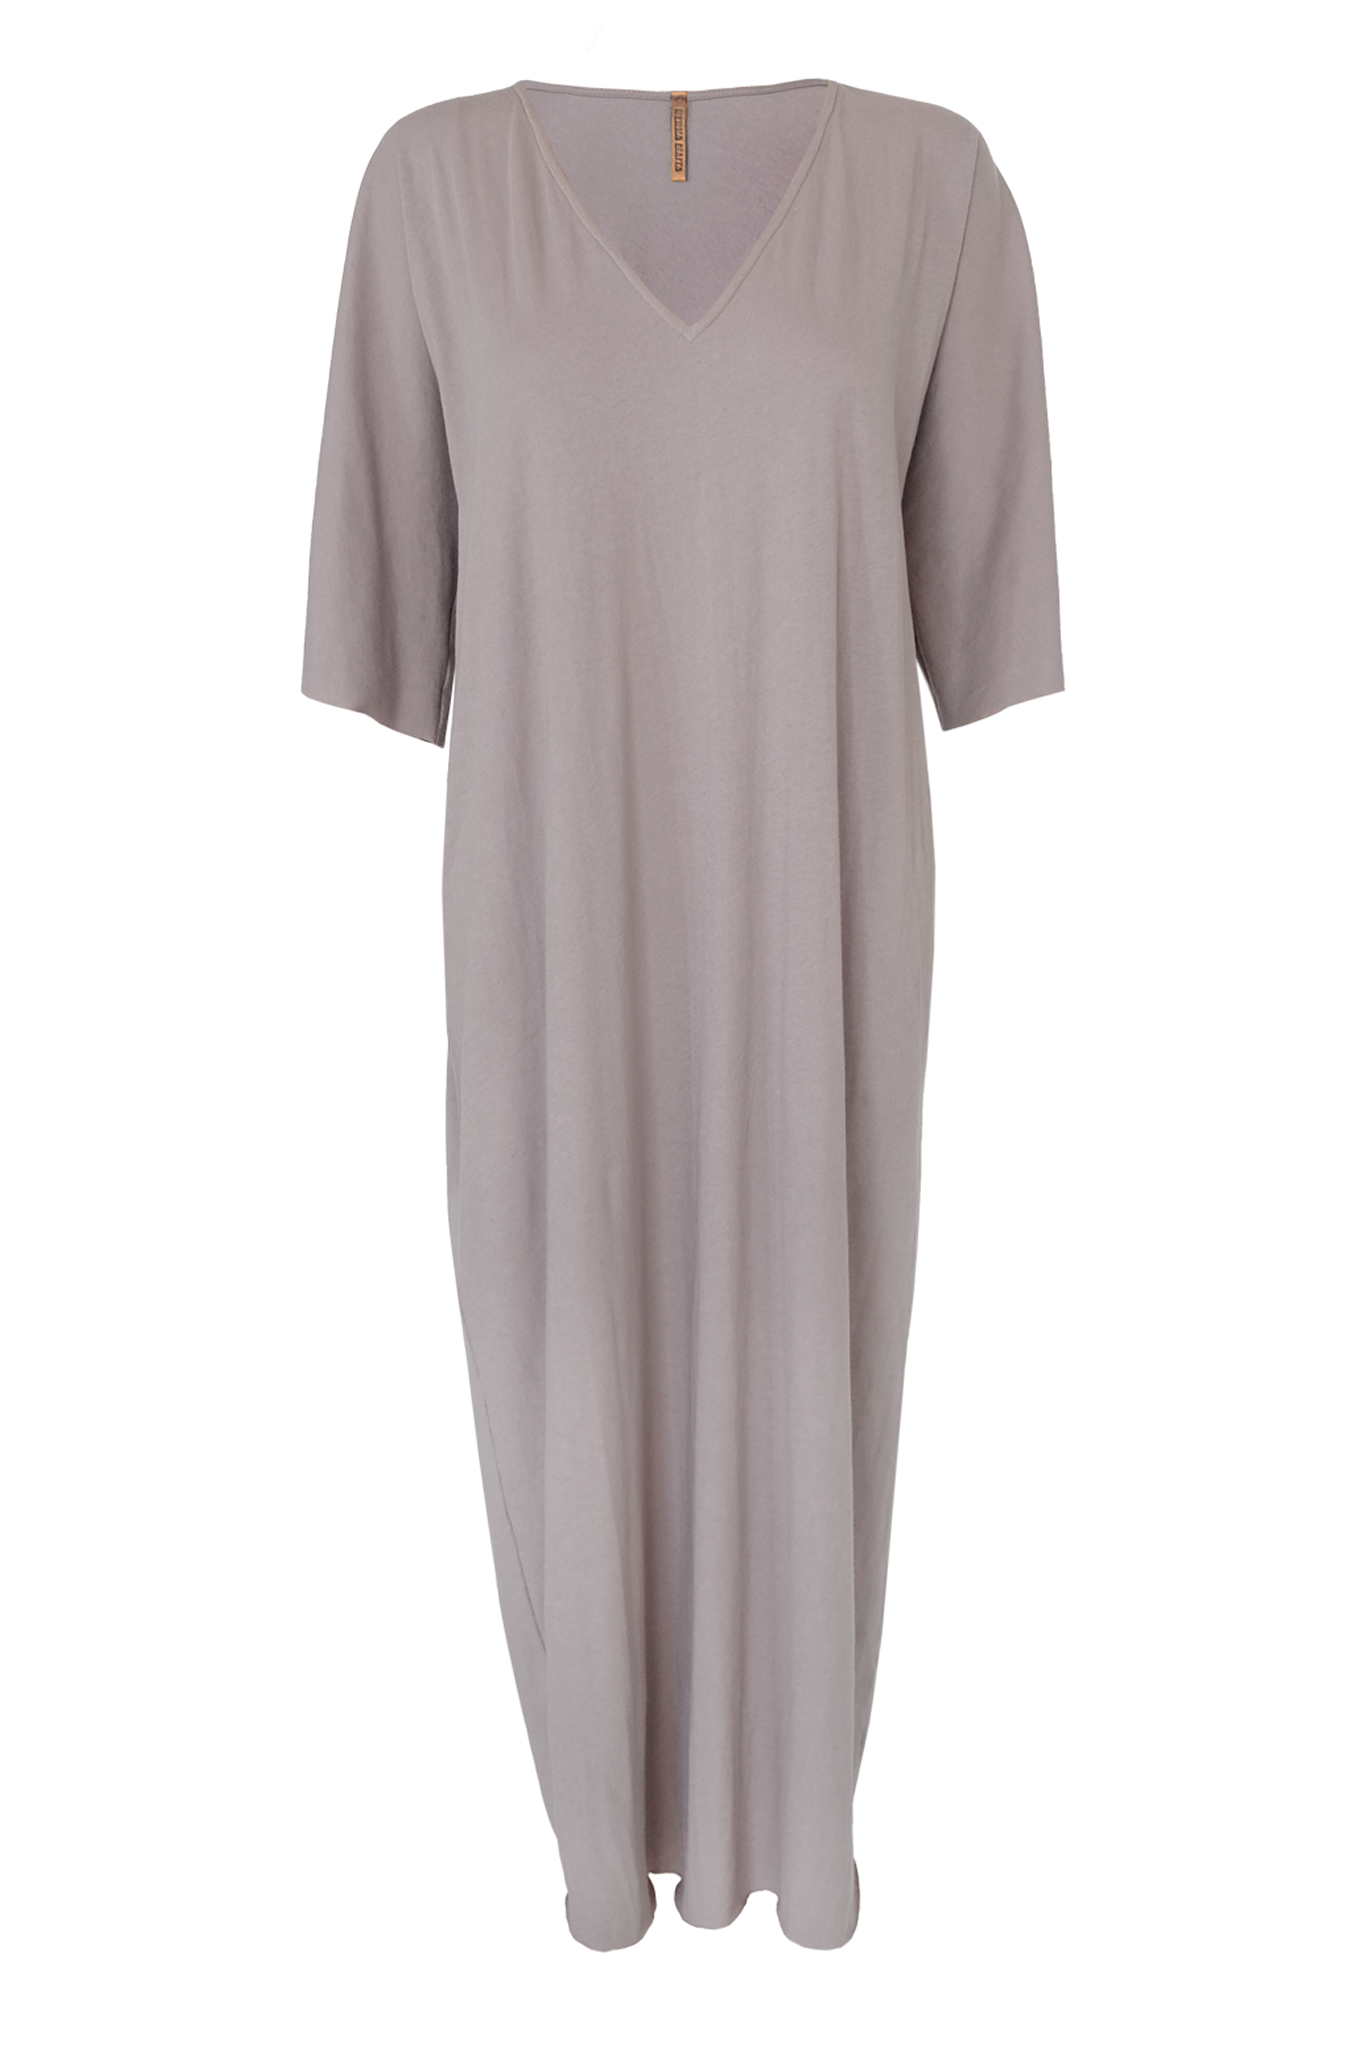 Cotton Jersey Caftan - Buff